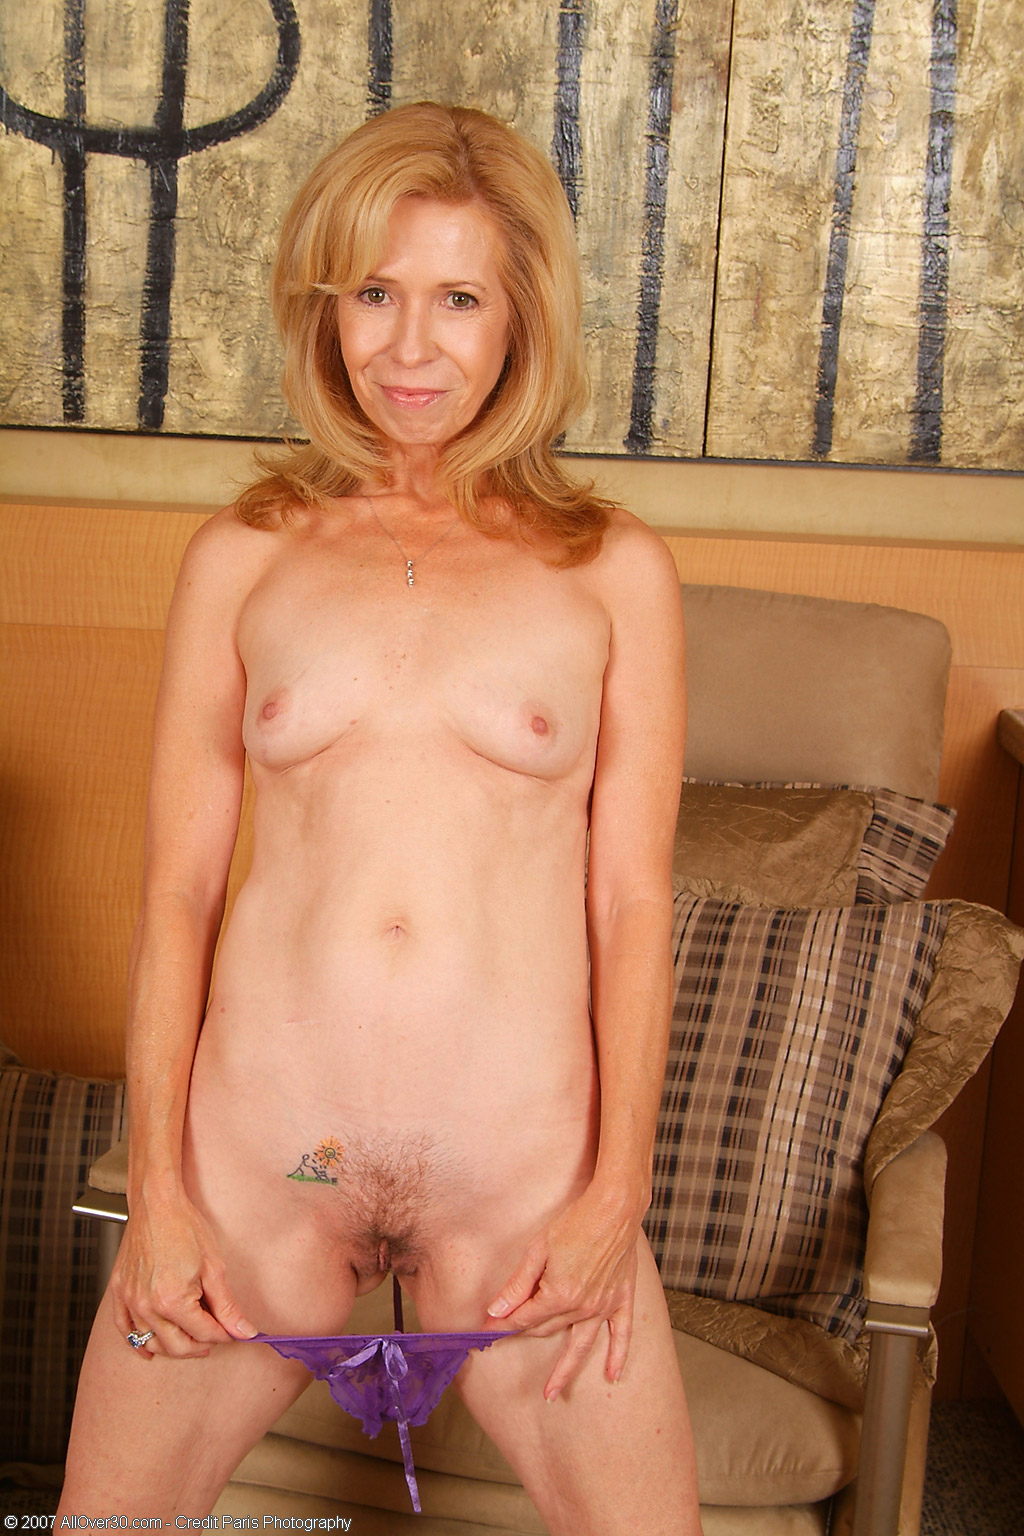 bd nude picture through hidden cam free download